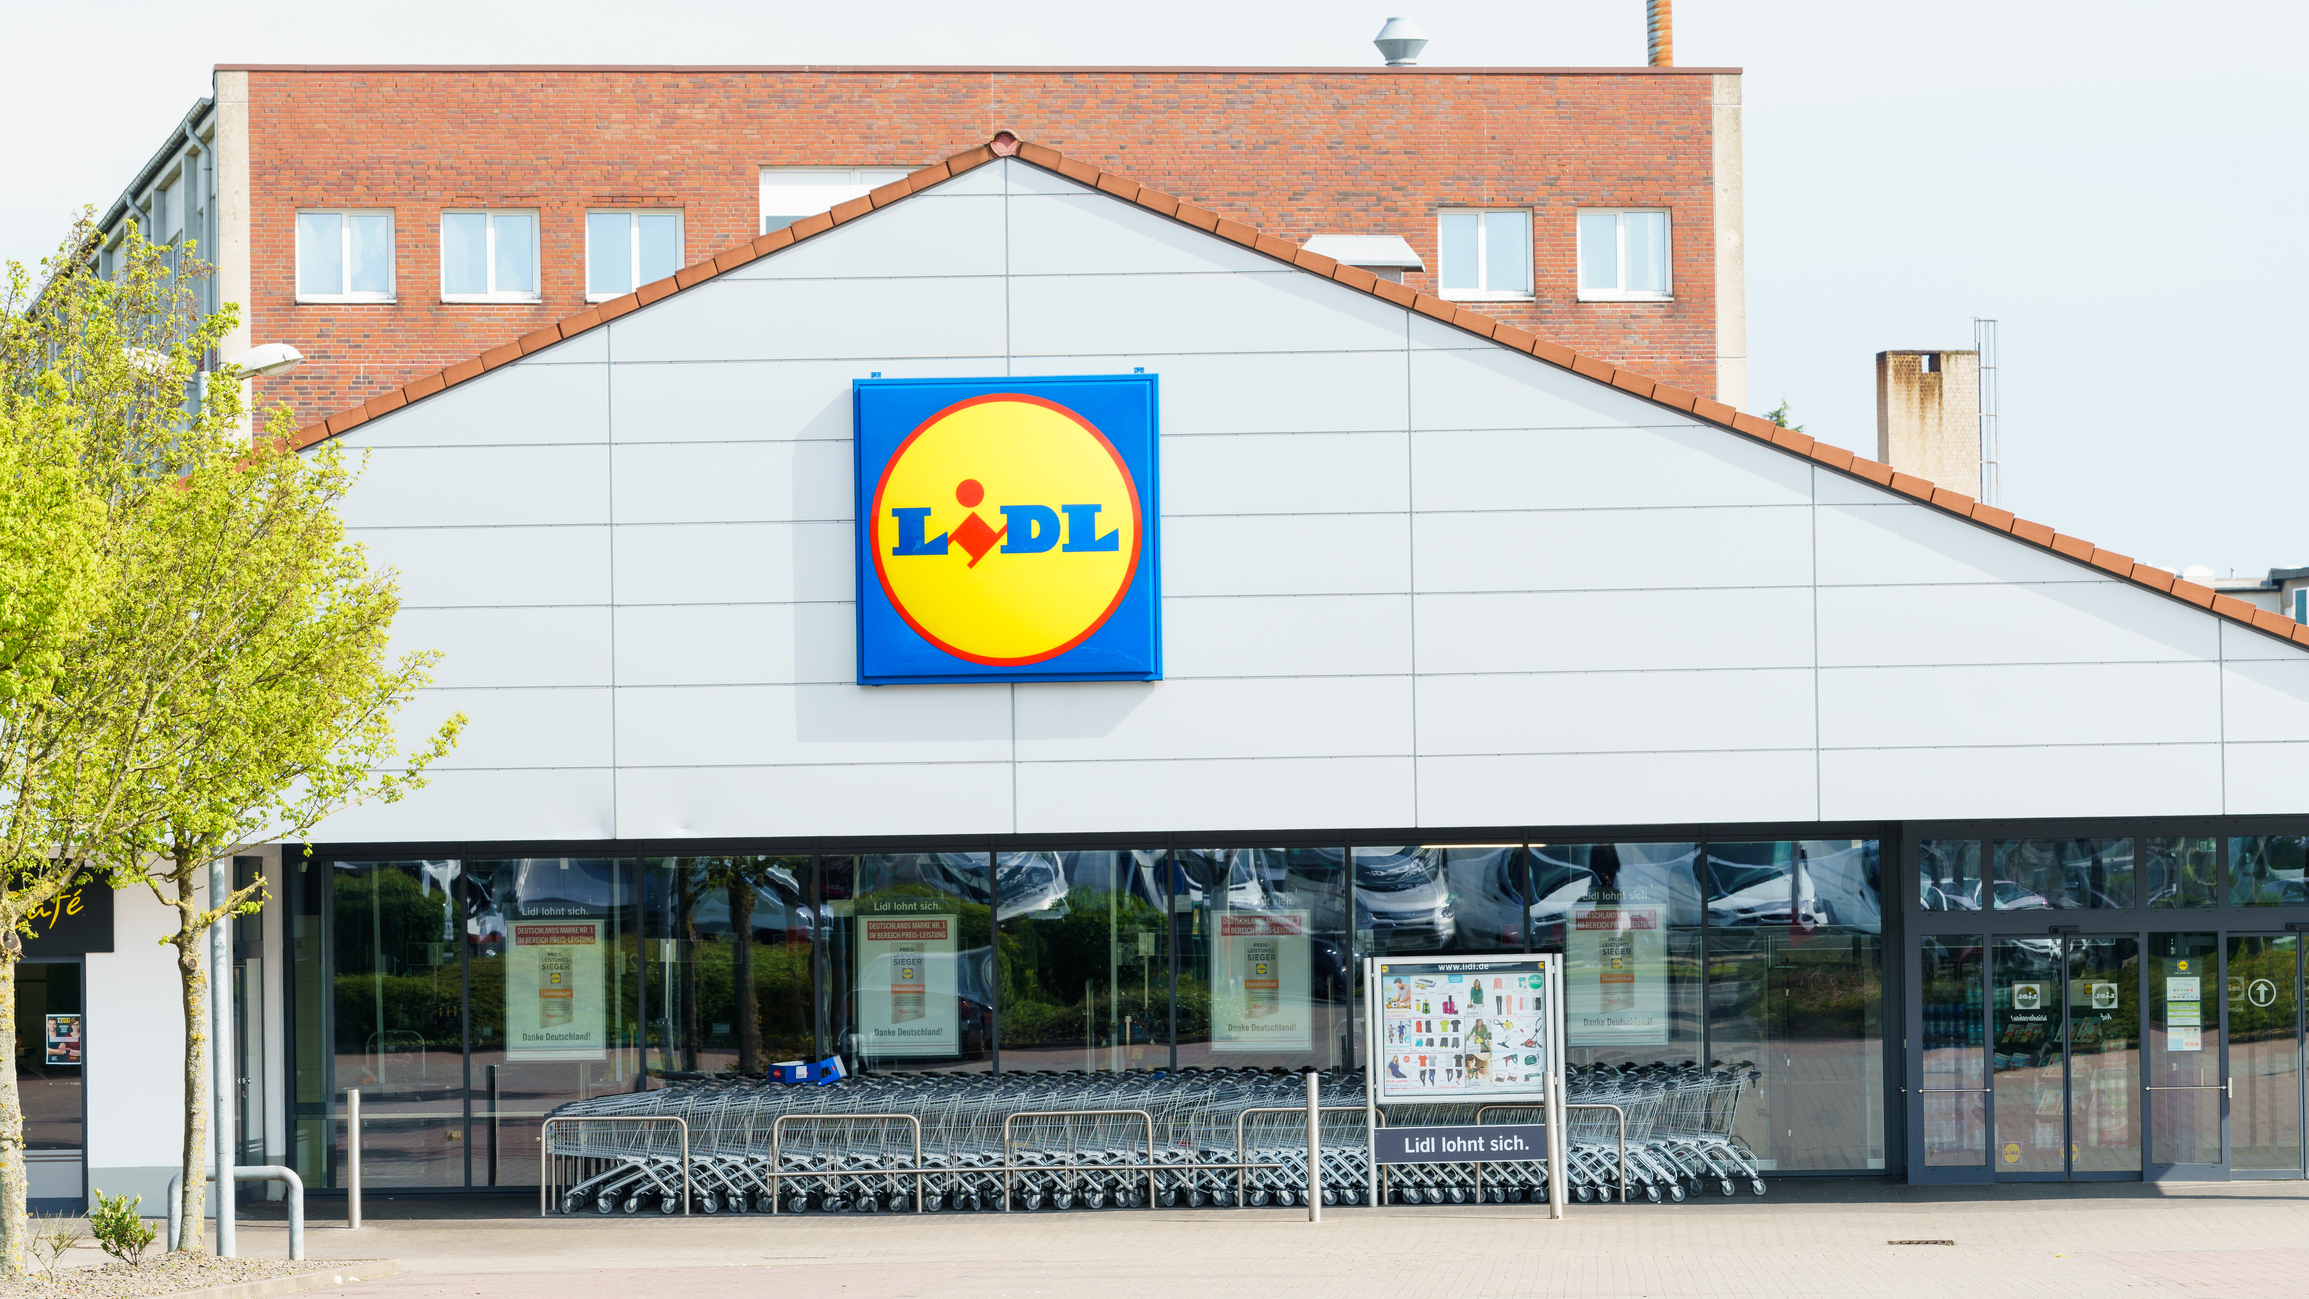 The Lidl Effect: How the German Retailer Is Driving Down Prices and Shaking Up the Grocery Industry